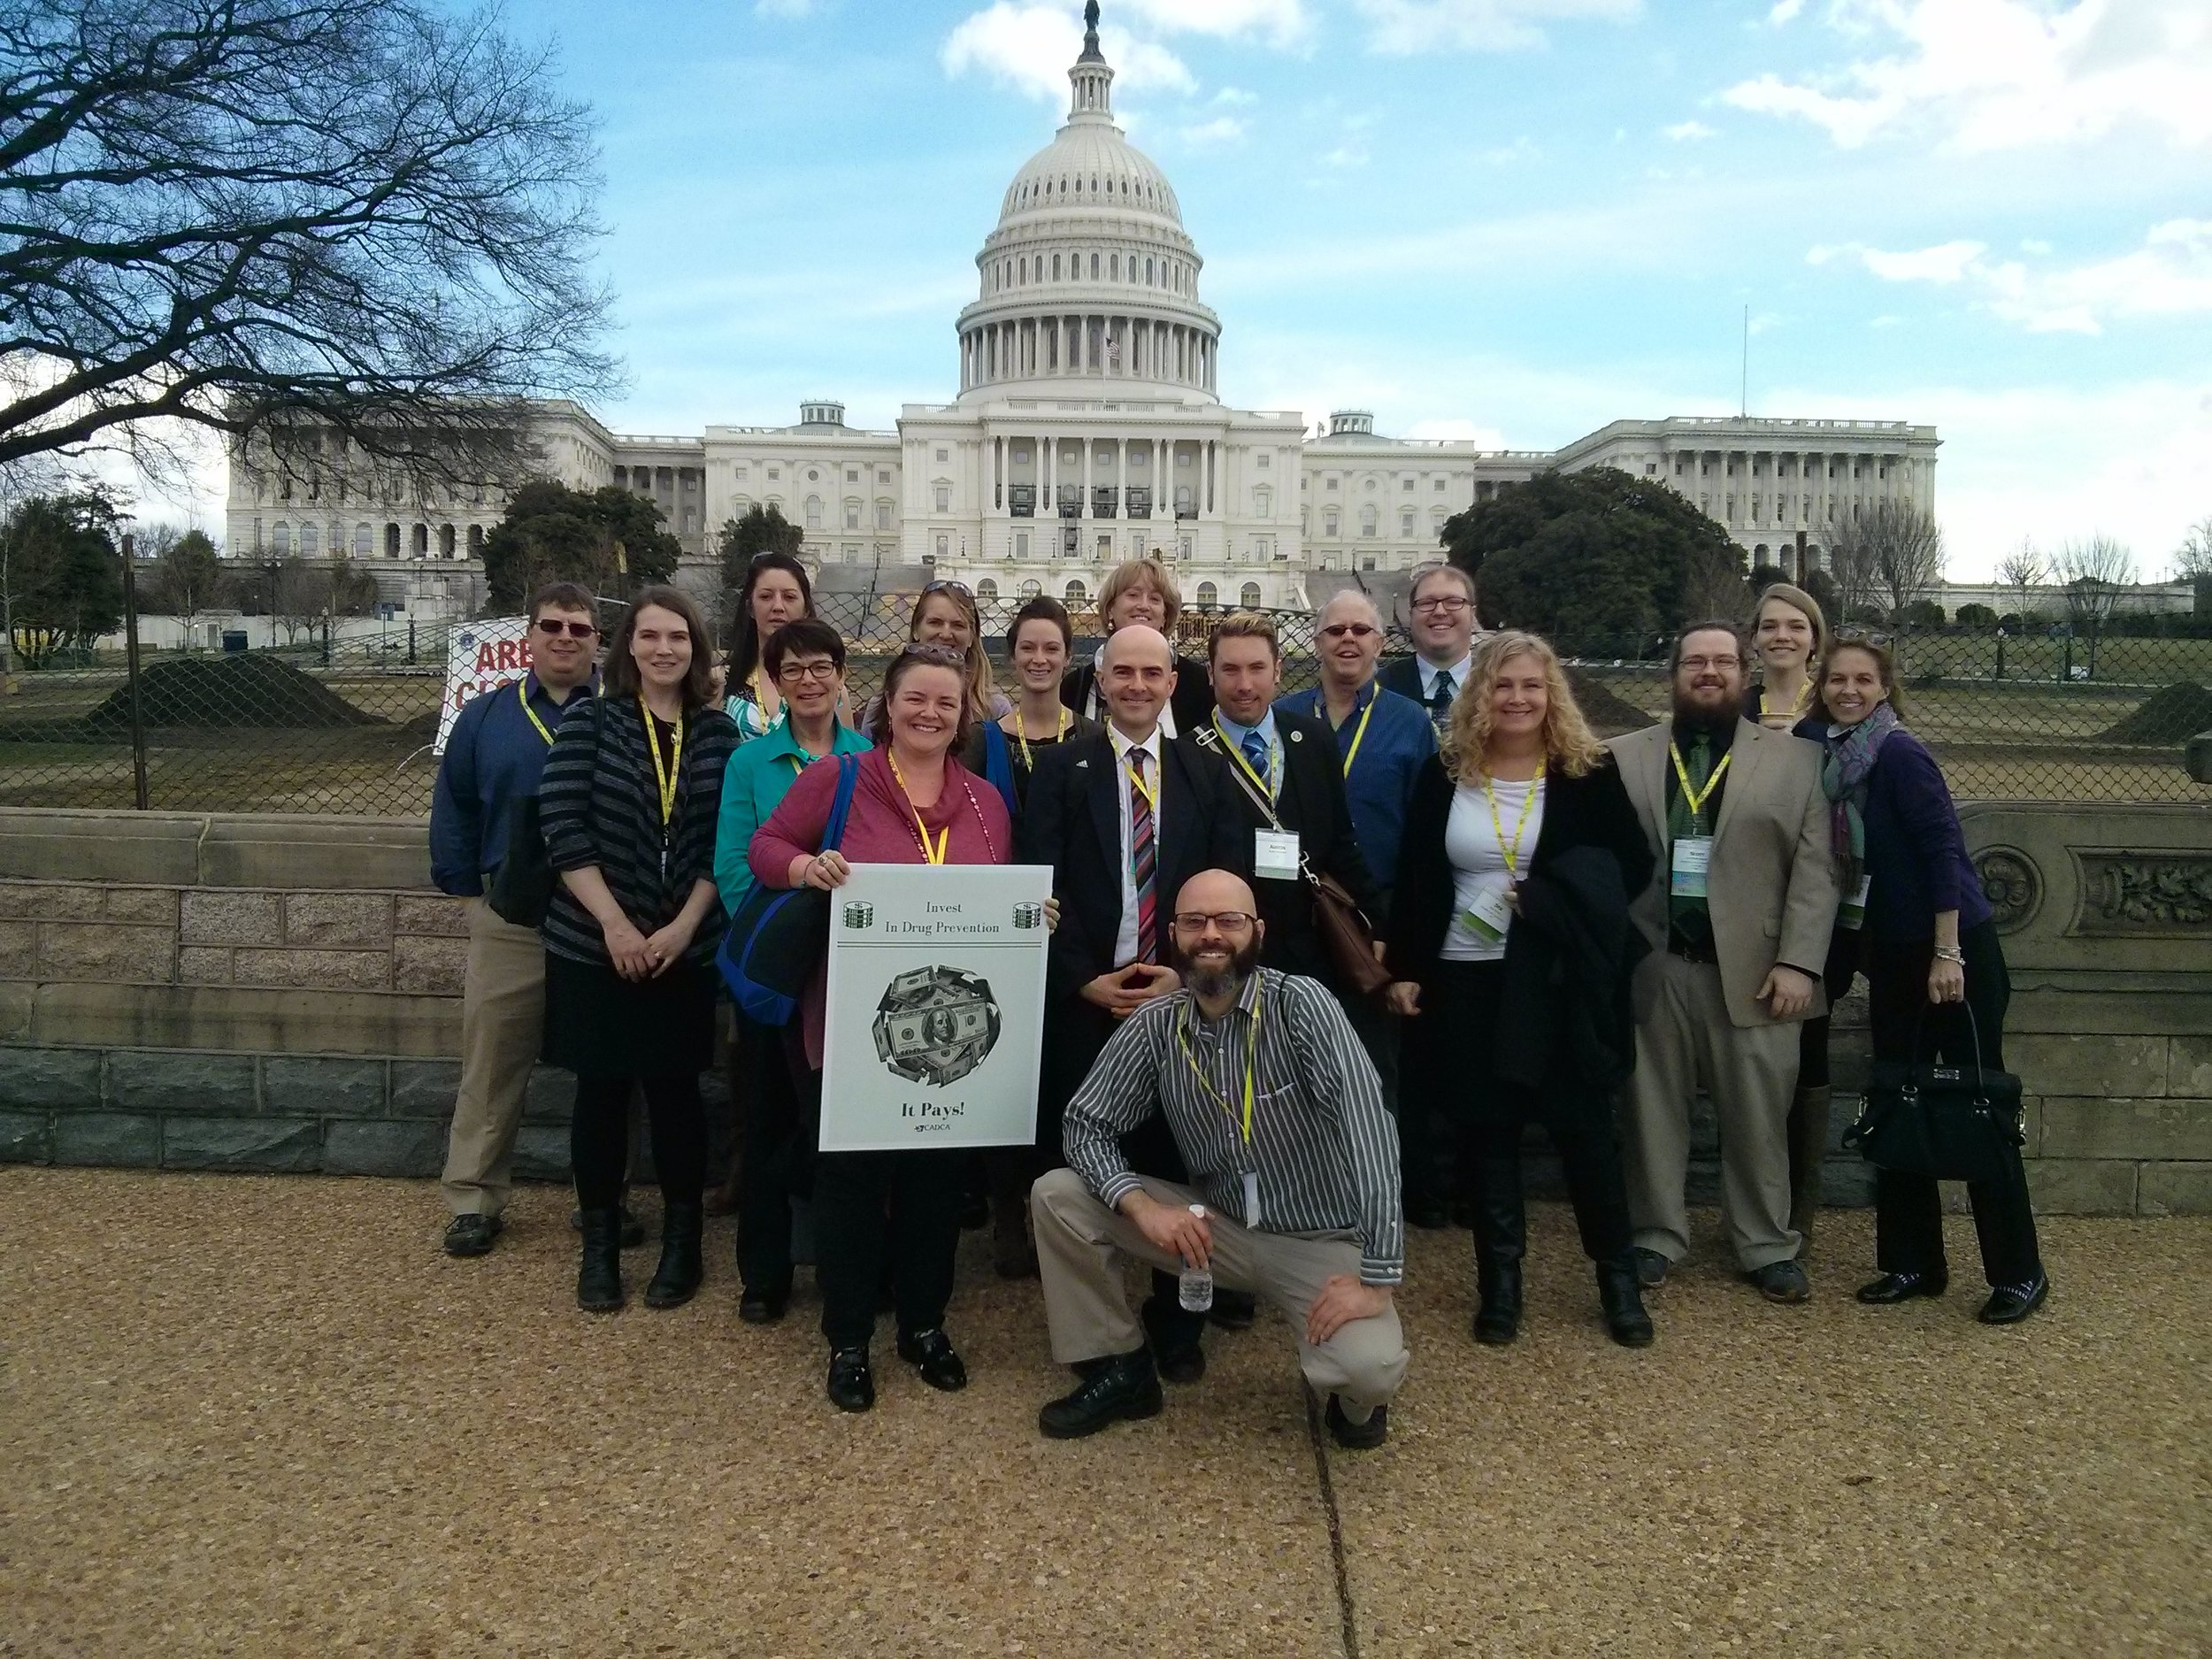 In front of Capitol.jpg